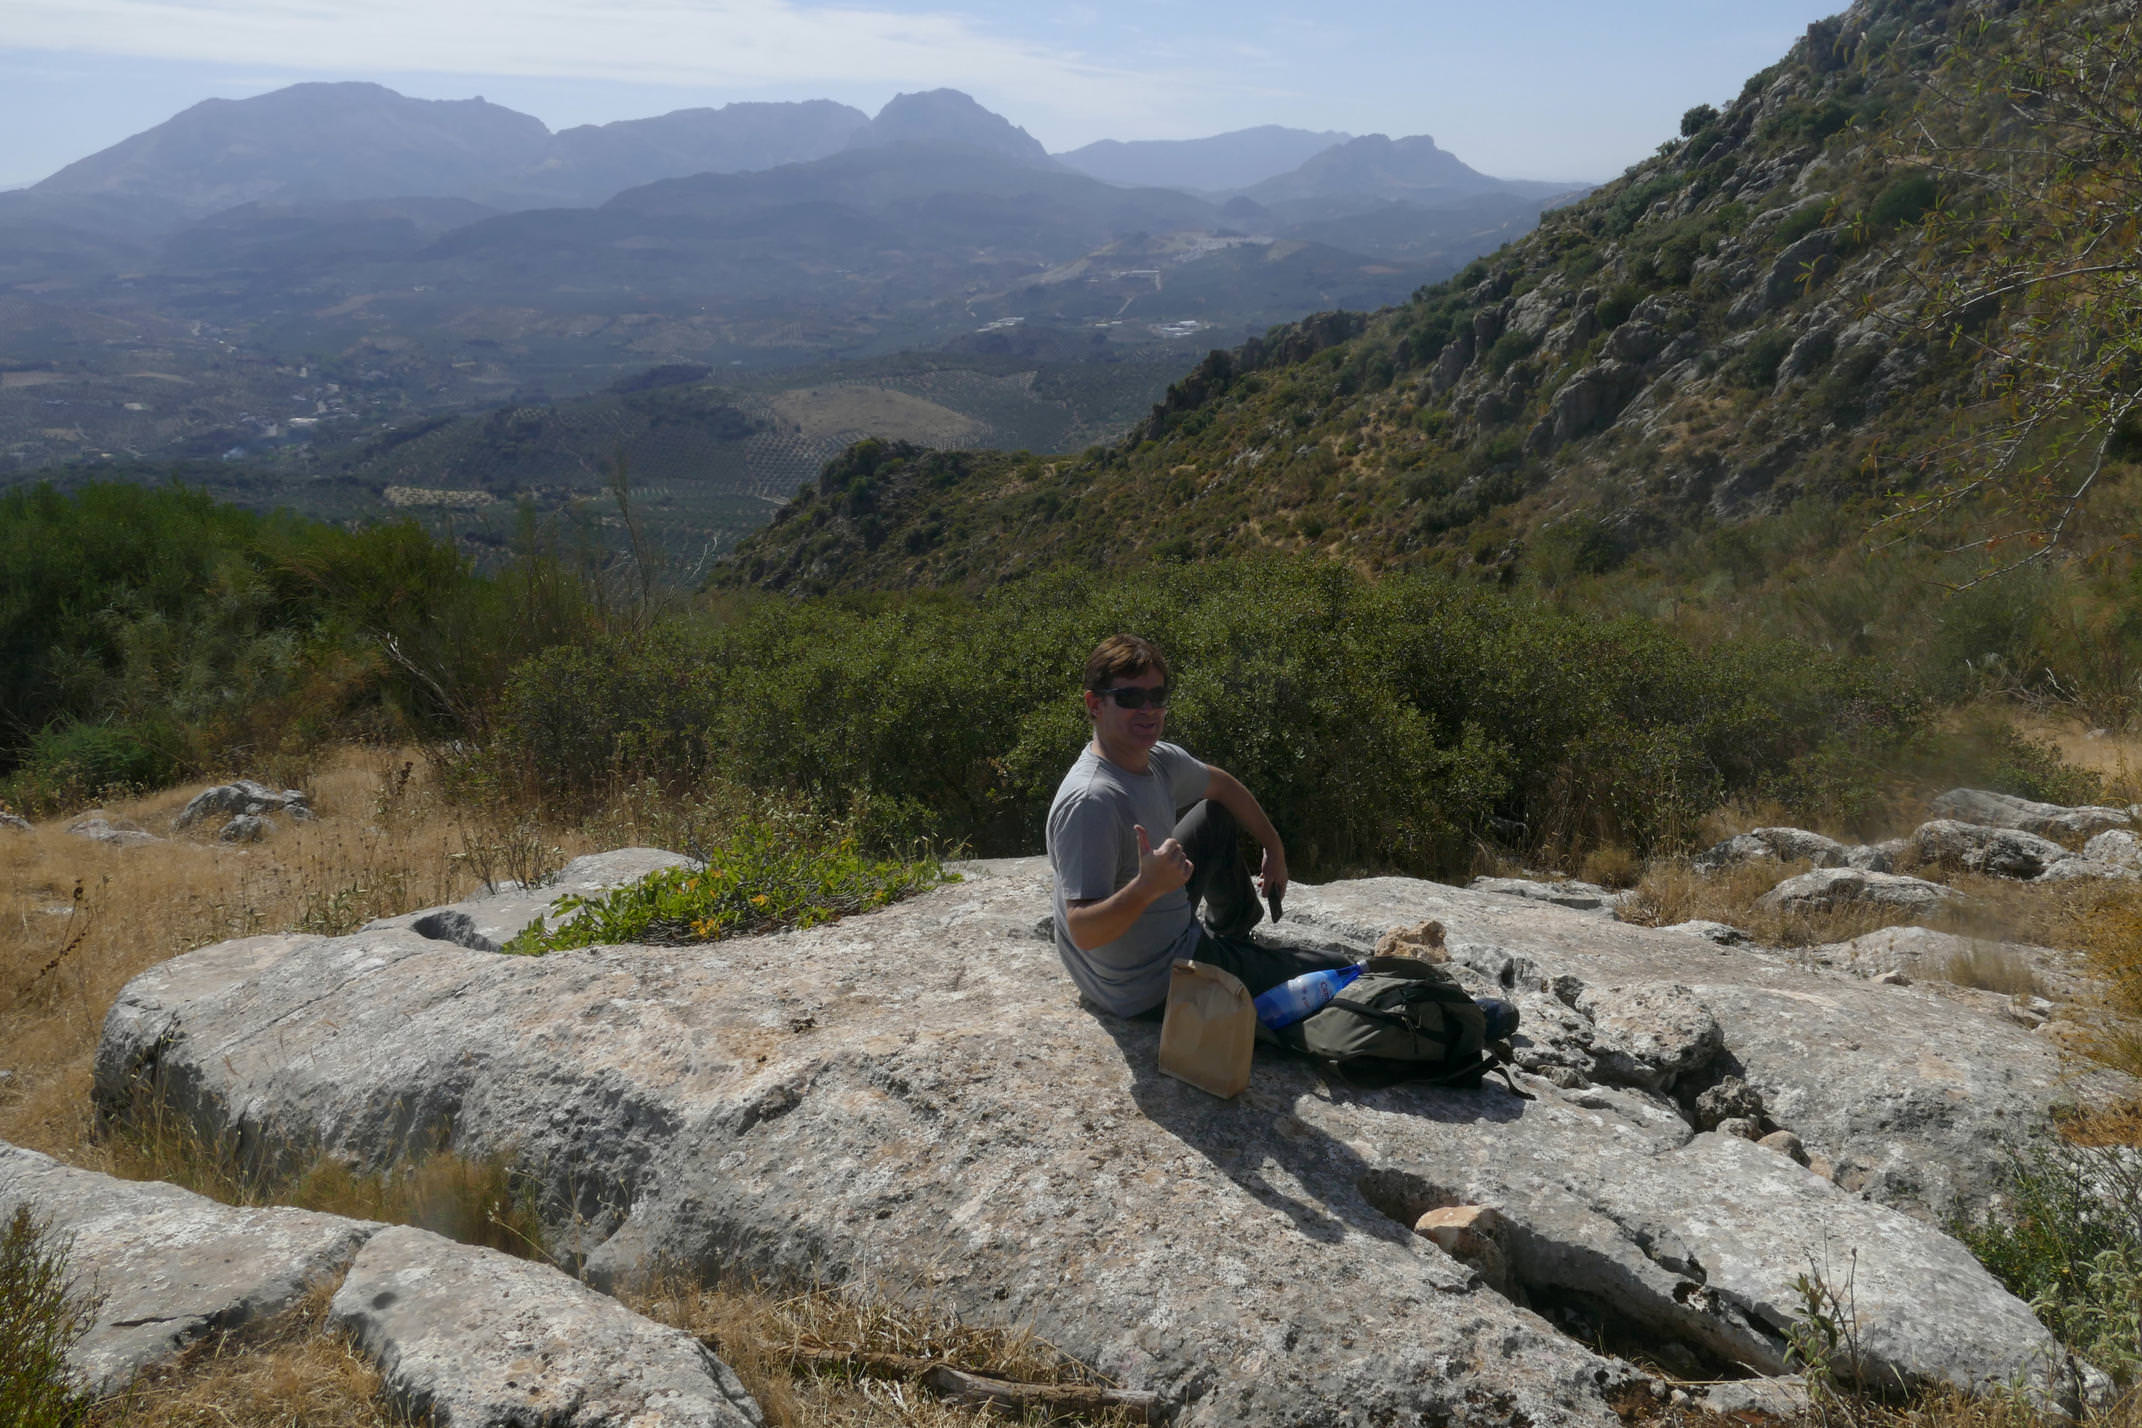 Walking with Tim in Andalucía